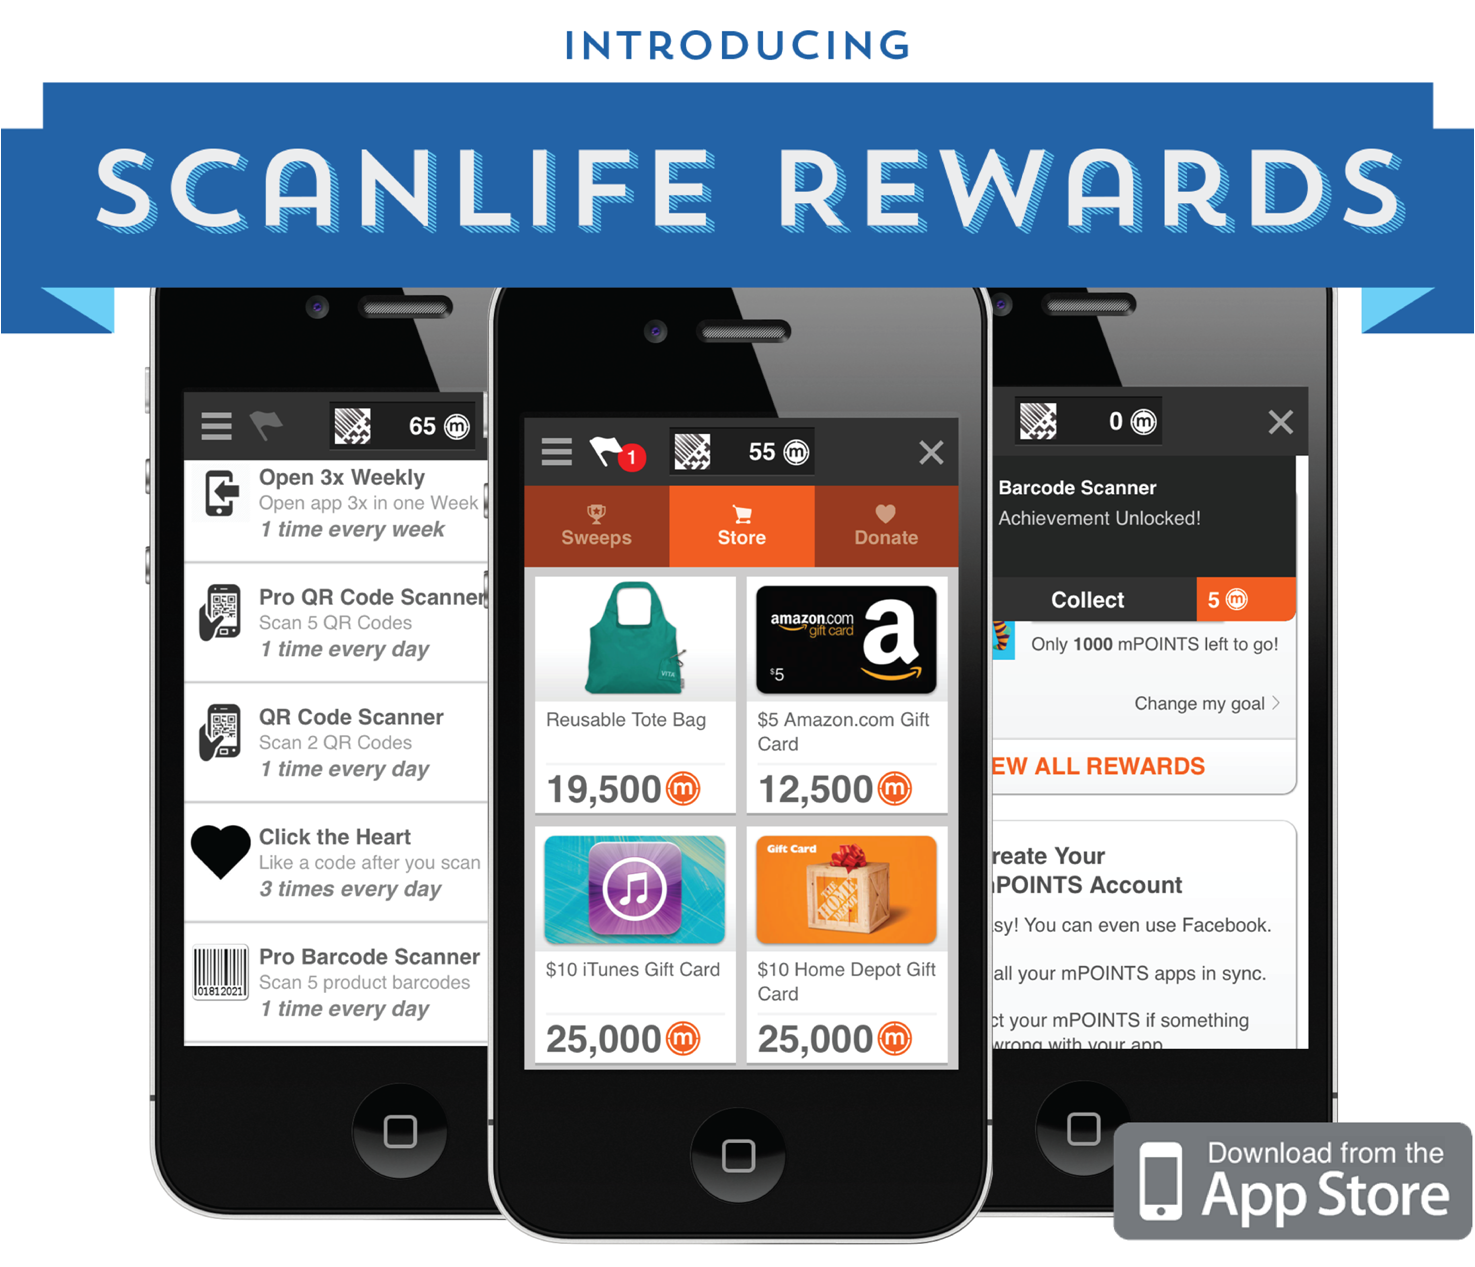 ScanLifeRewards